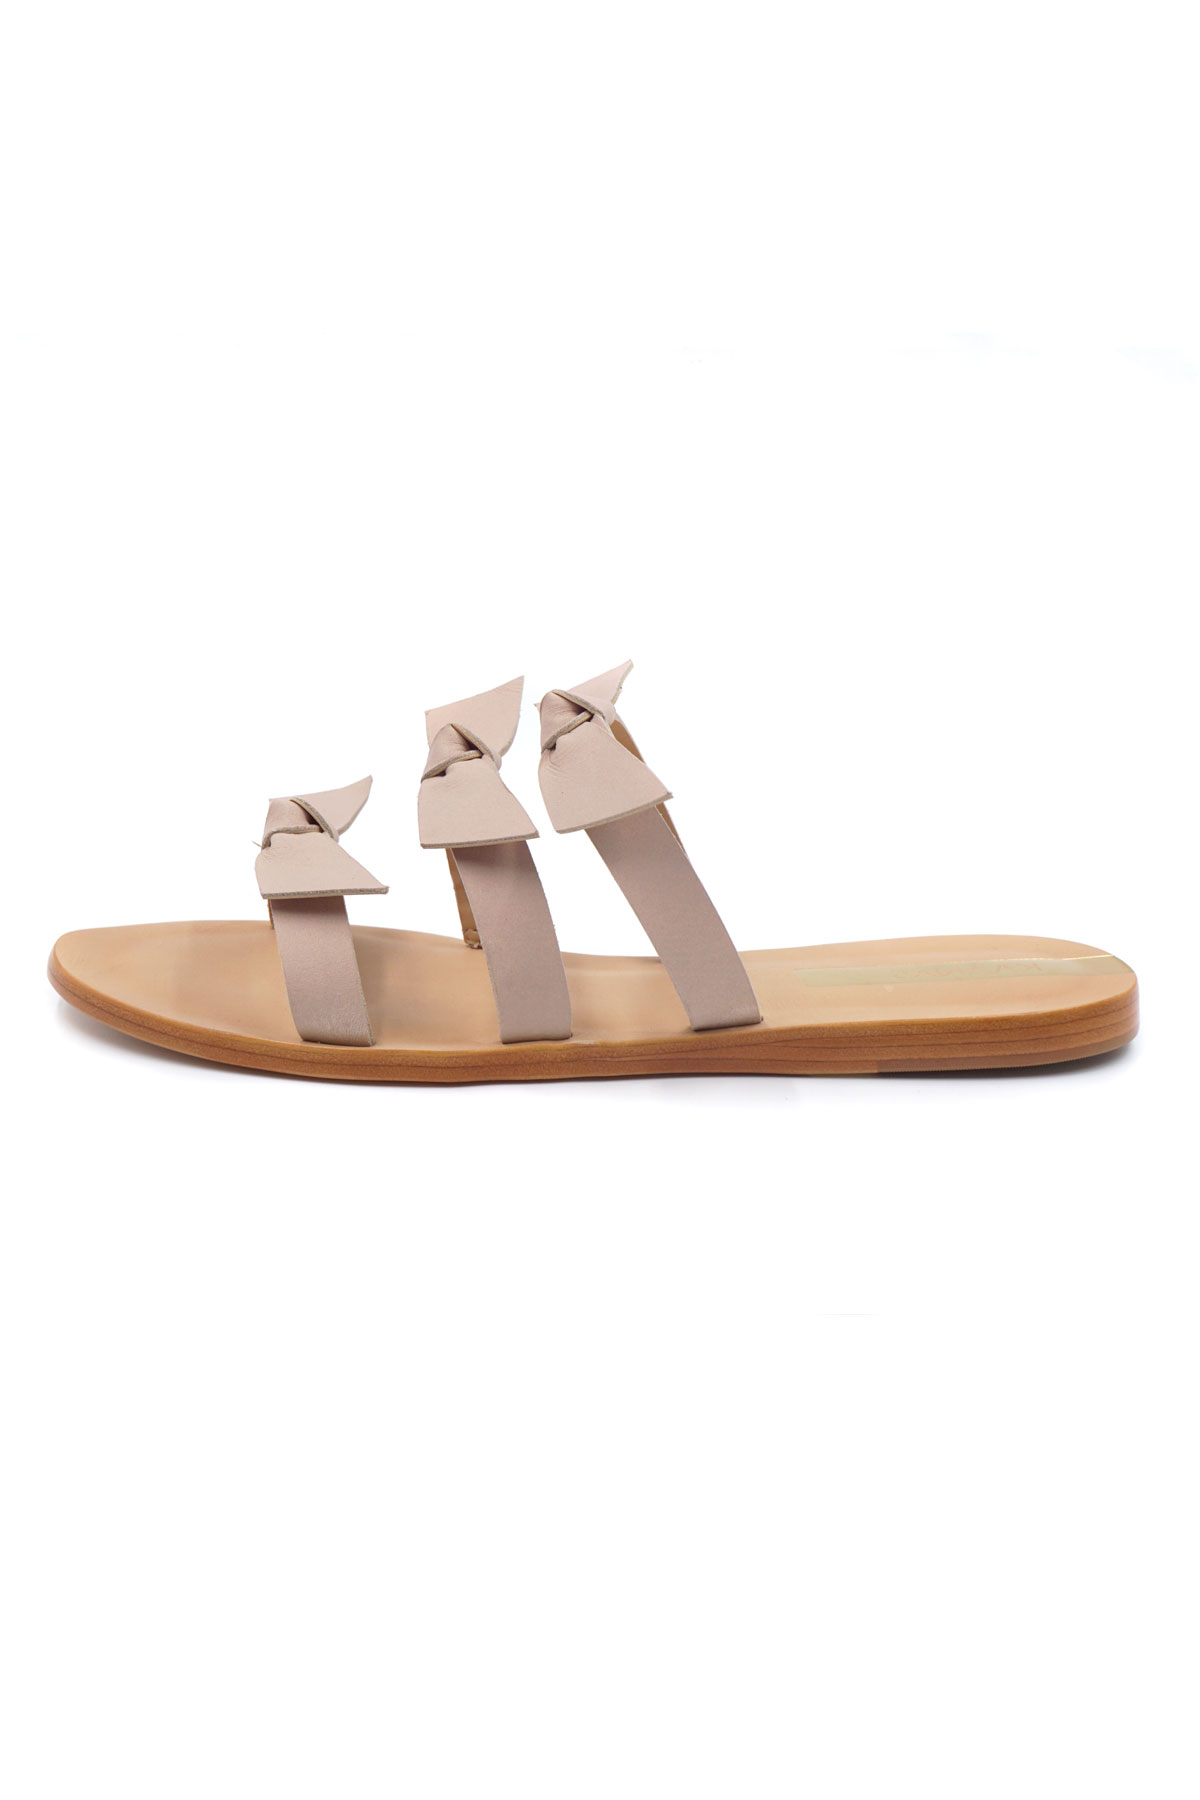 Recife Bow Slides - Nude 2